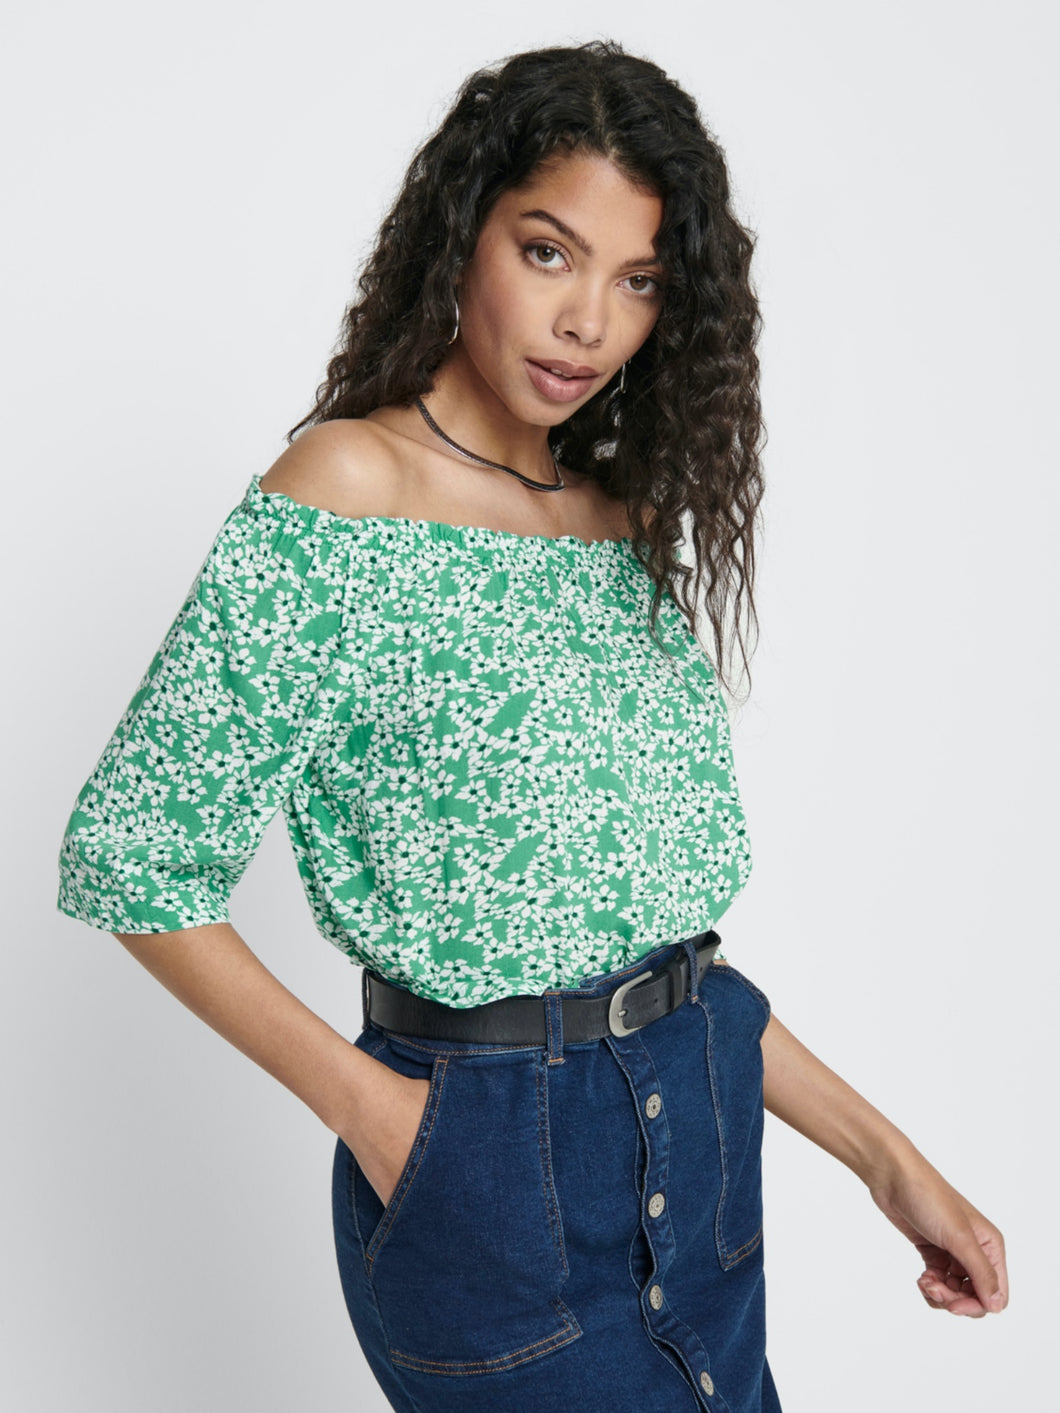 Starr Life 3/4 Offshoulder Top - Sea Green / 36 - TOPPAR 34,